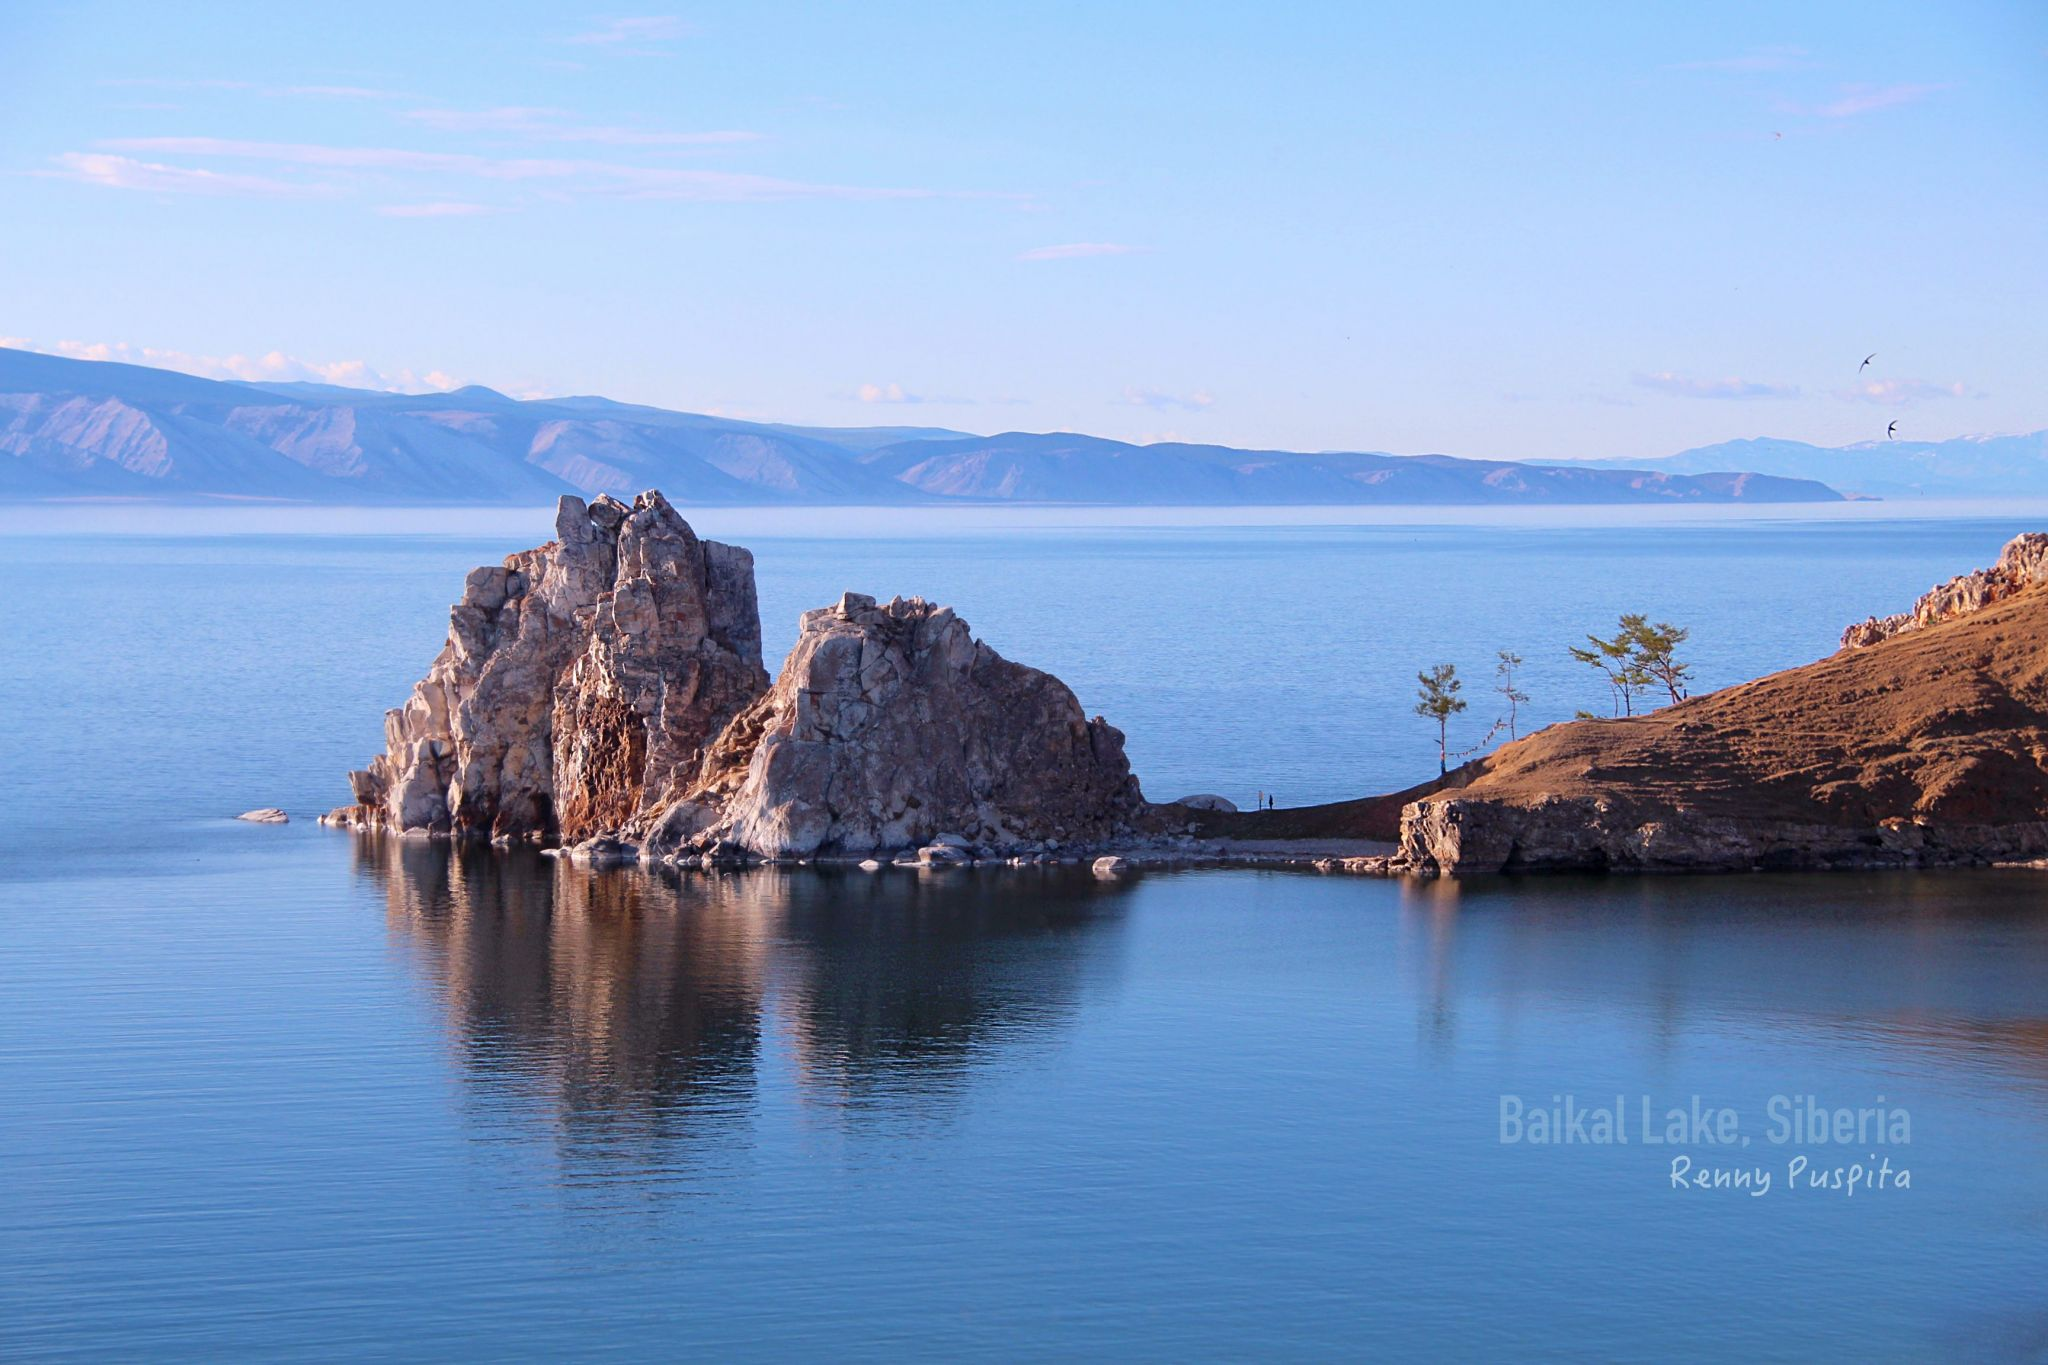 Shaman Rock at Baikal Lake, Siberia - Russia, Russian Federation